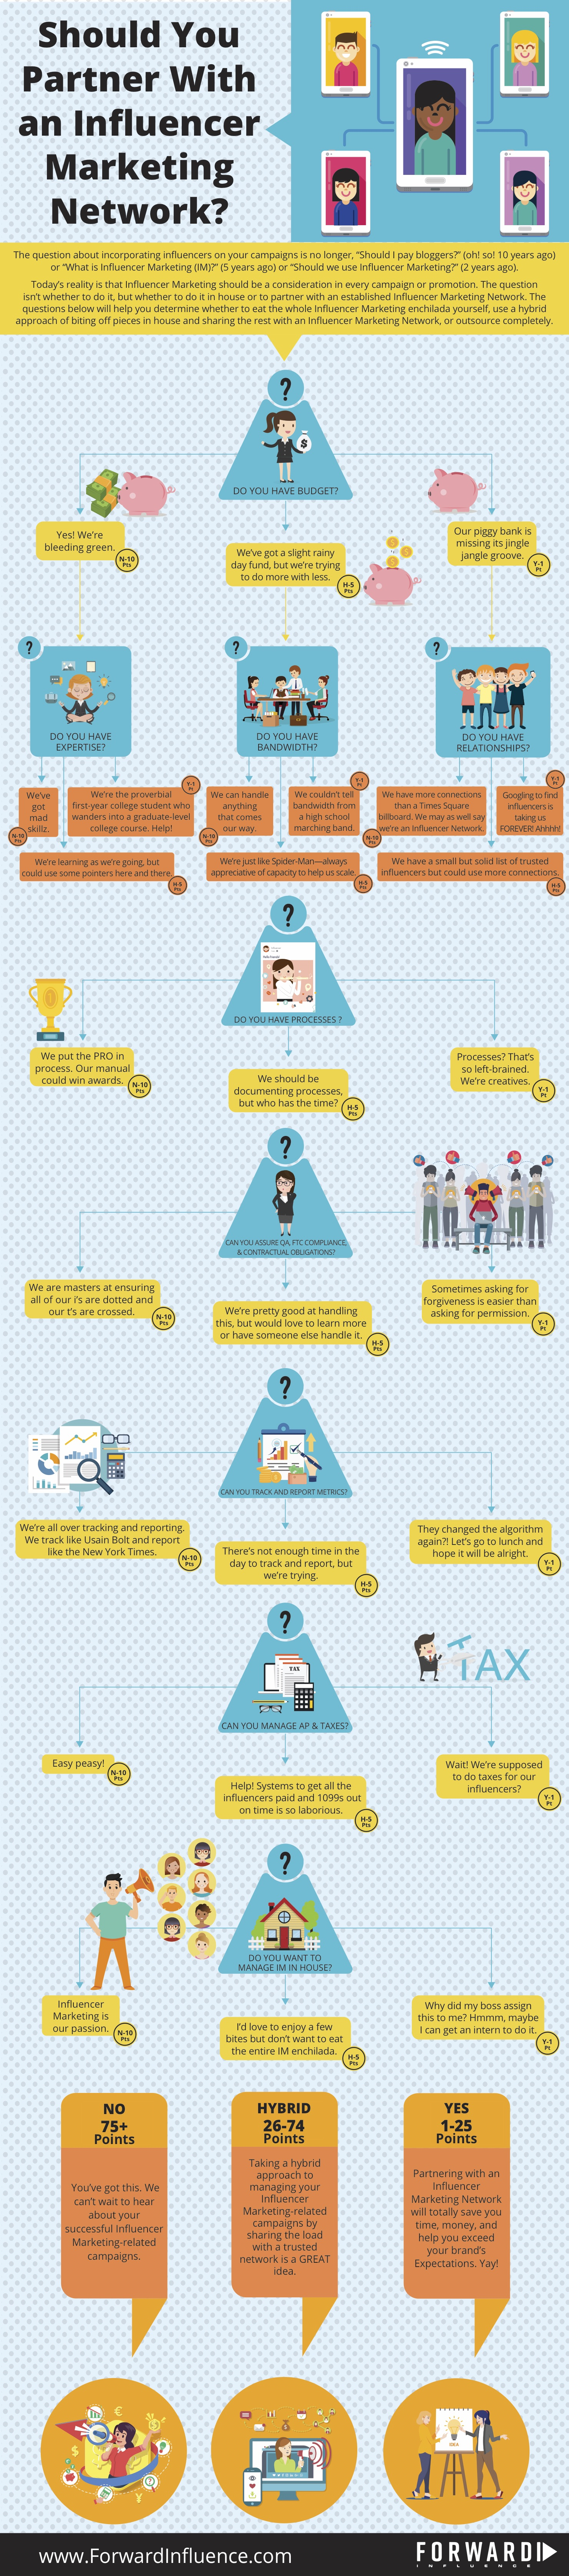 Influencer Marketing Network Infographic